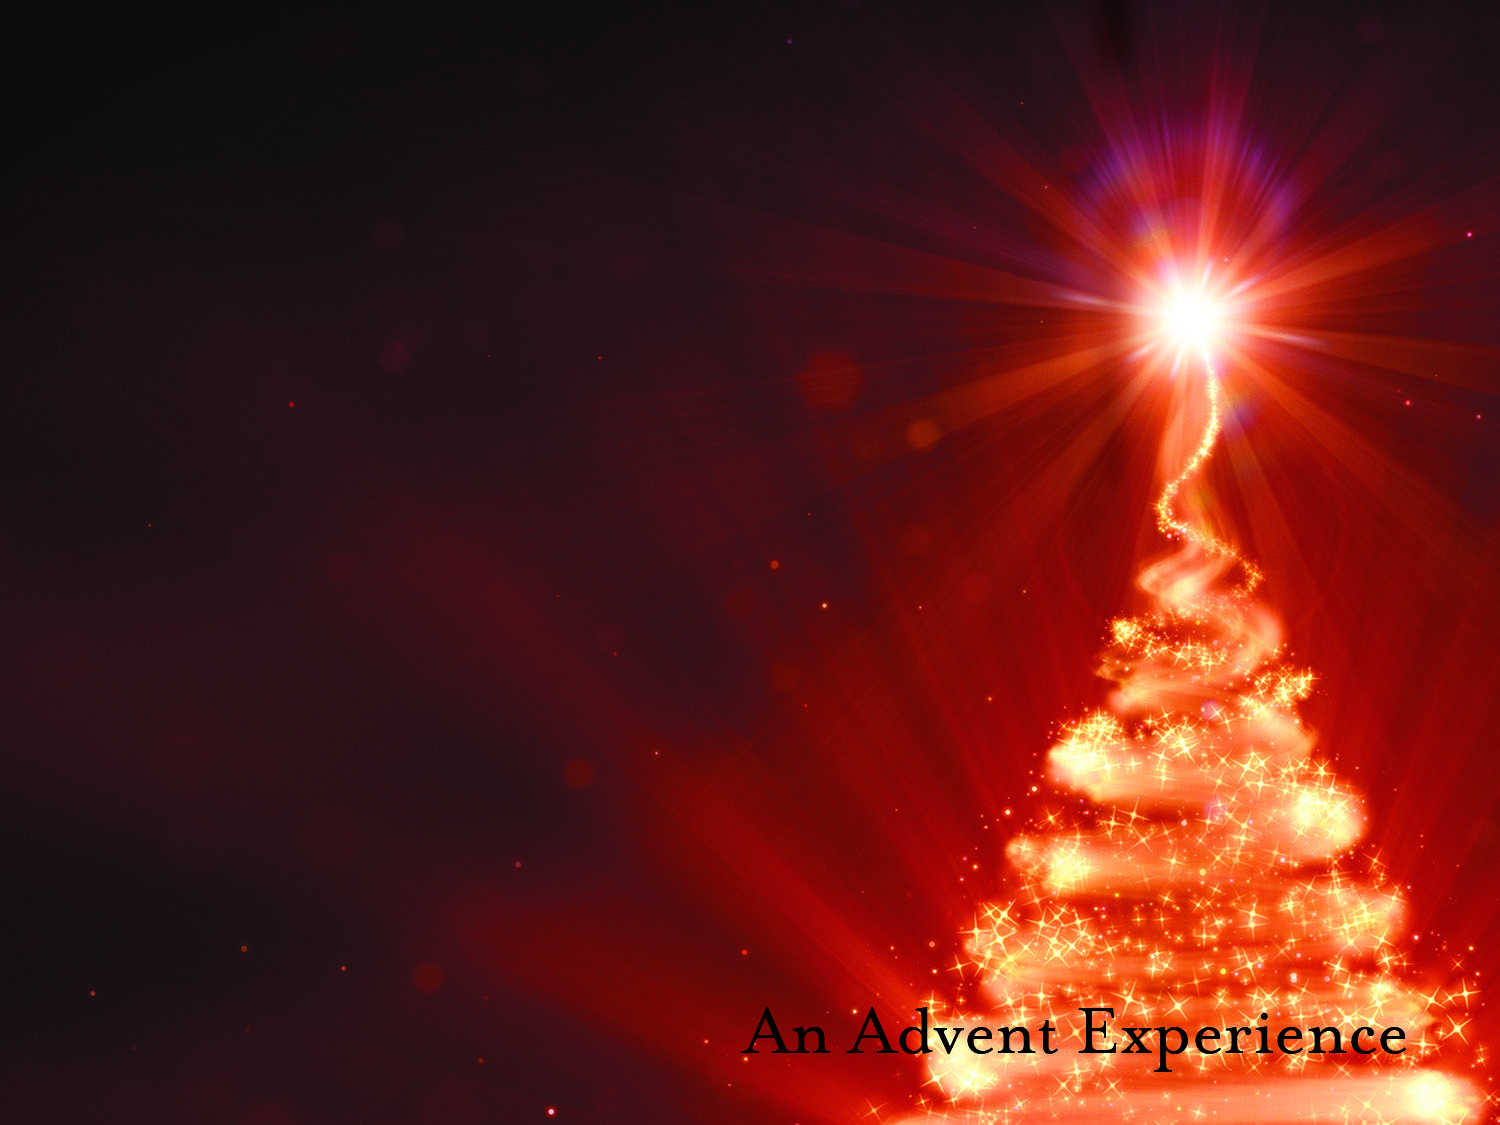 Anticipate Advent Series